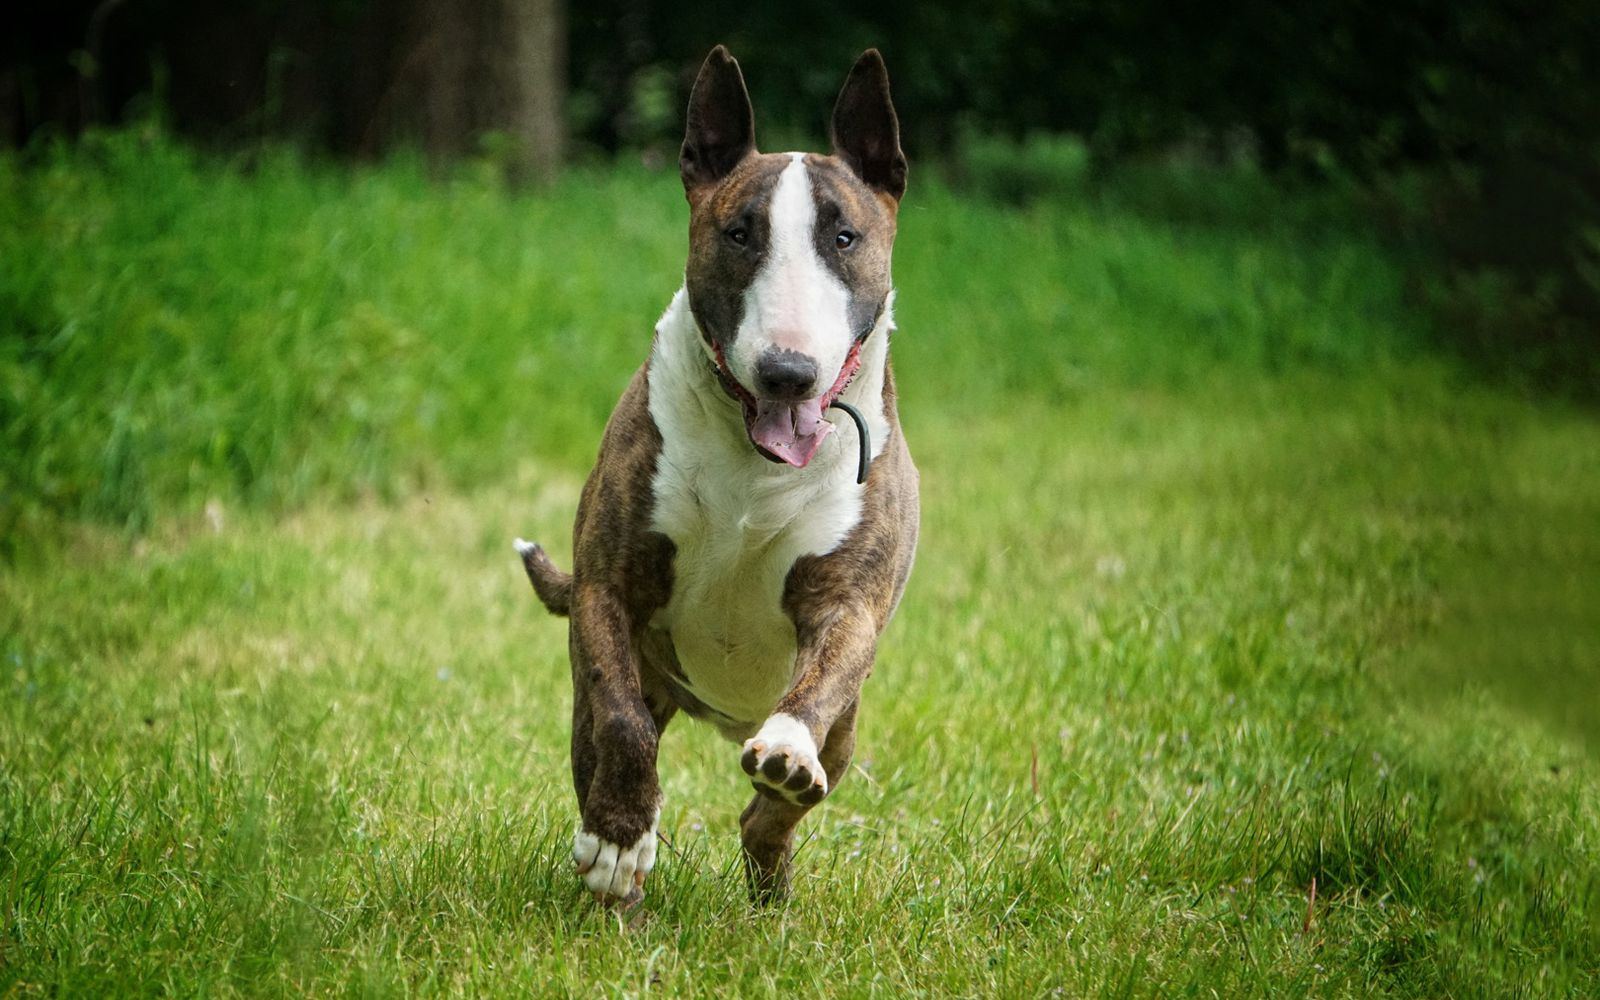 Bull Terrier - Lifestyle